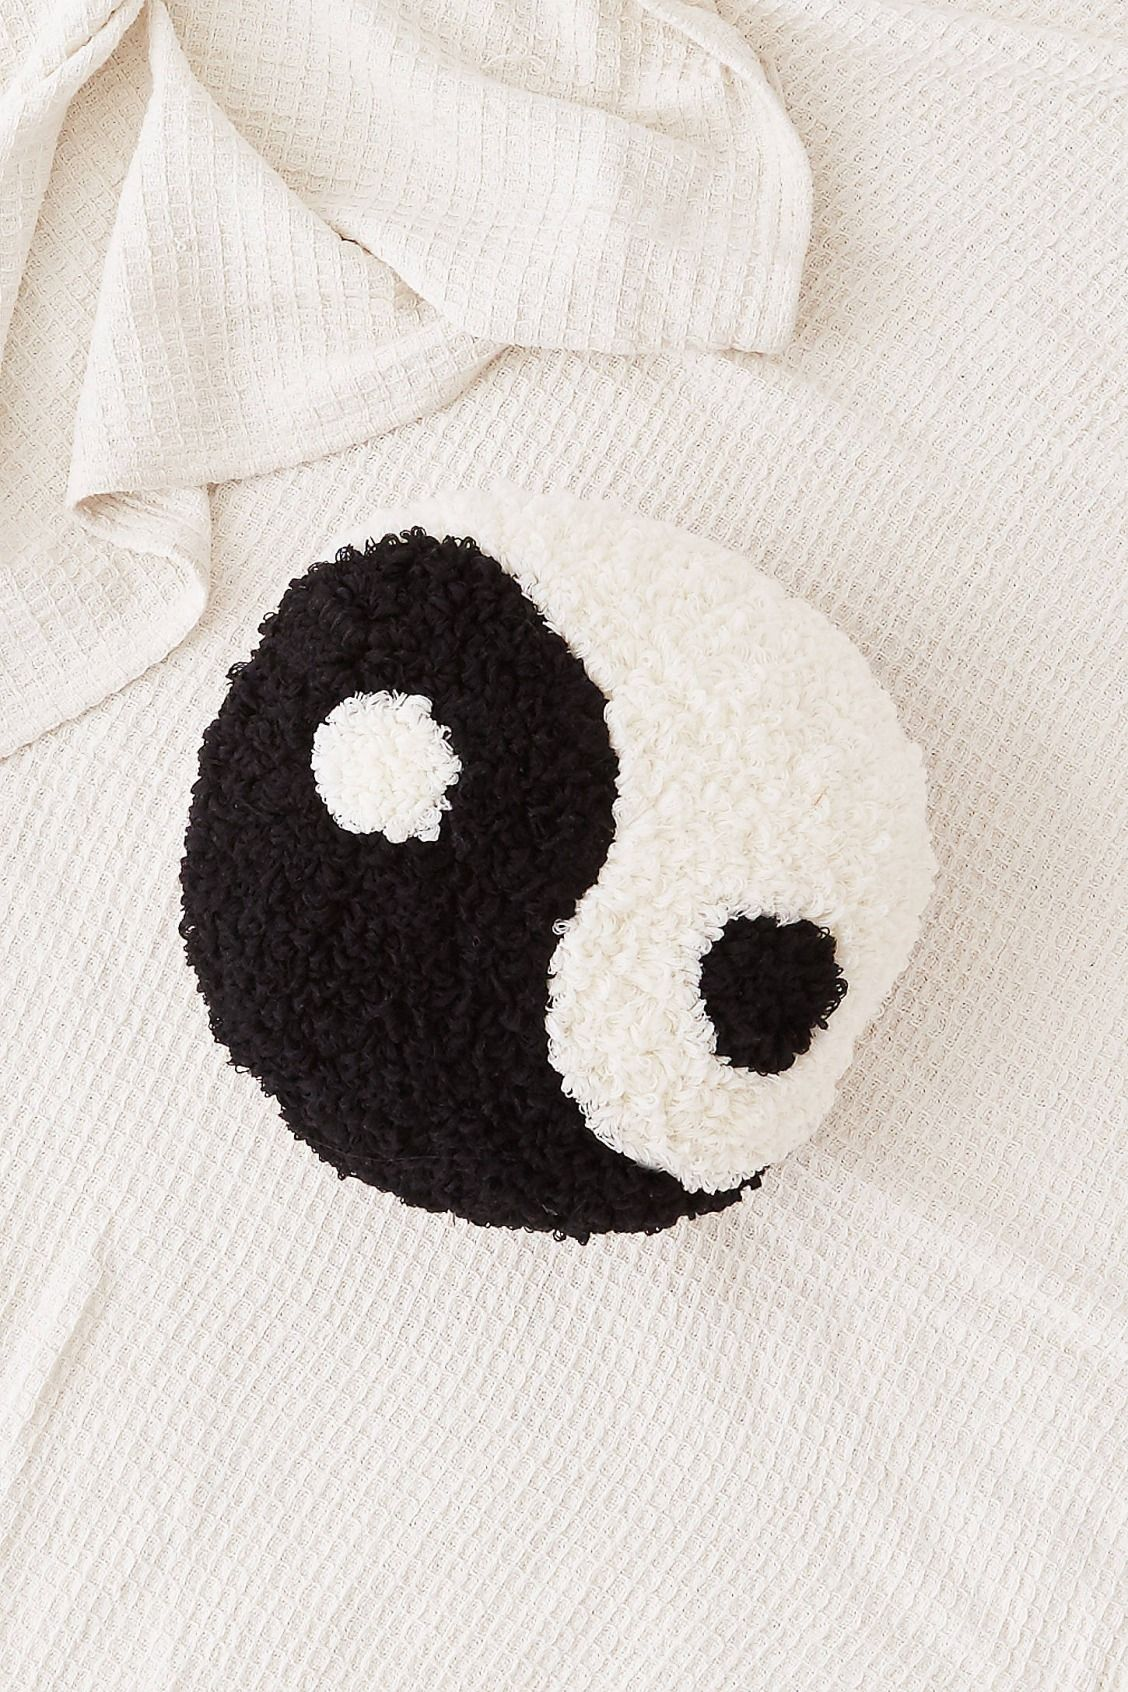 Ying Yang Decor Throw Pillow Cushion